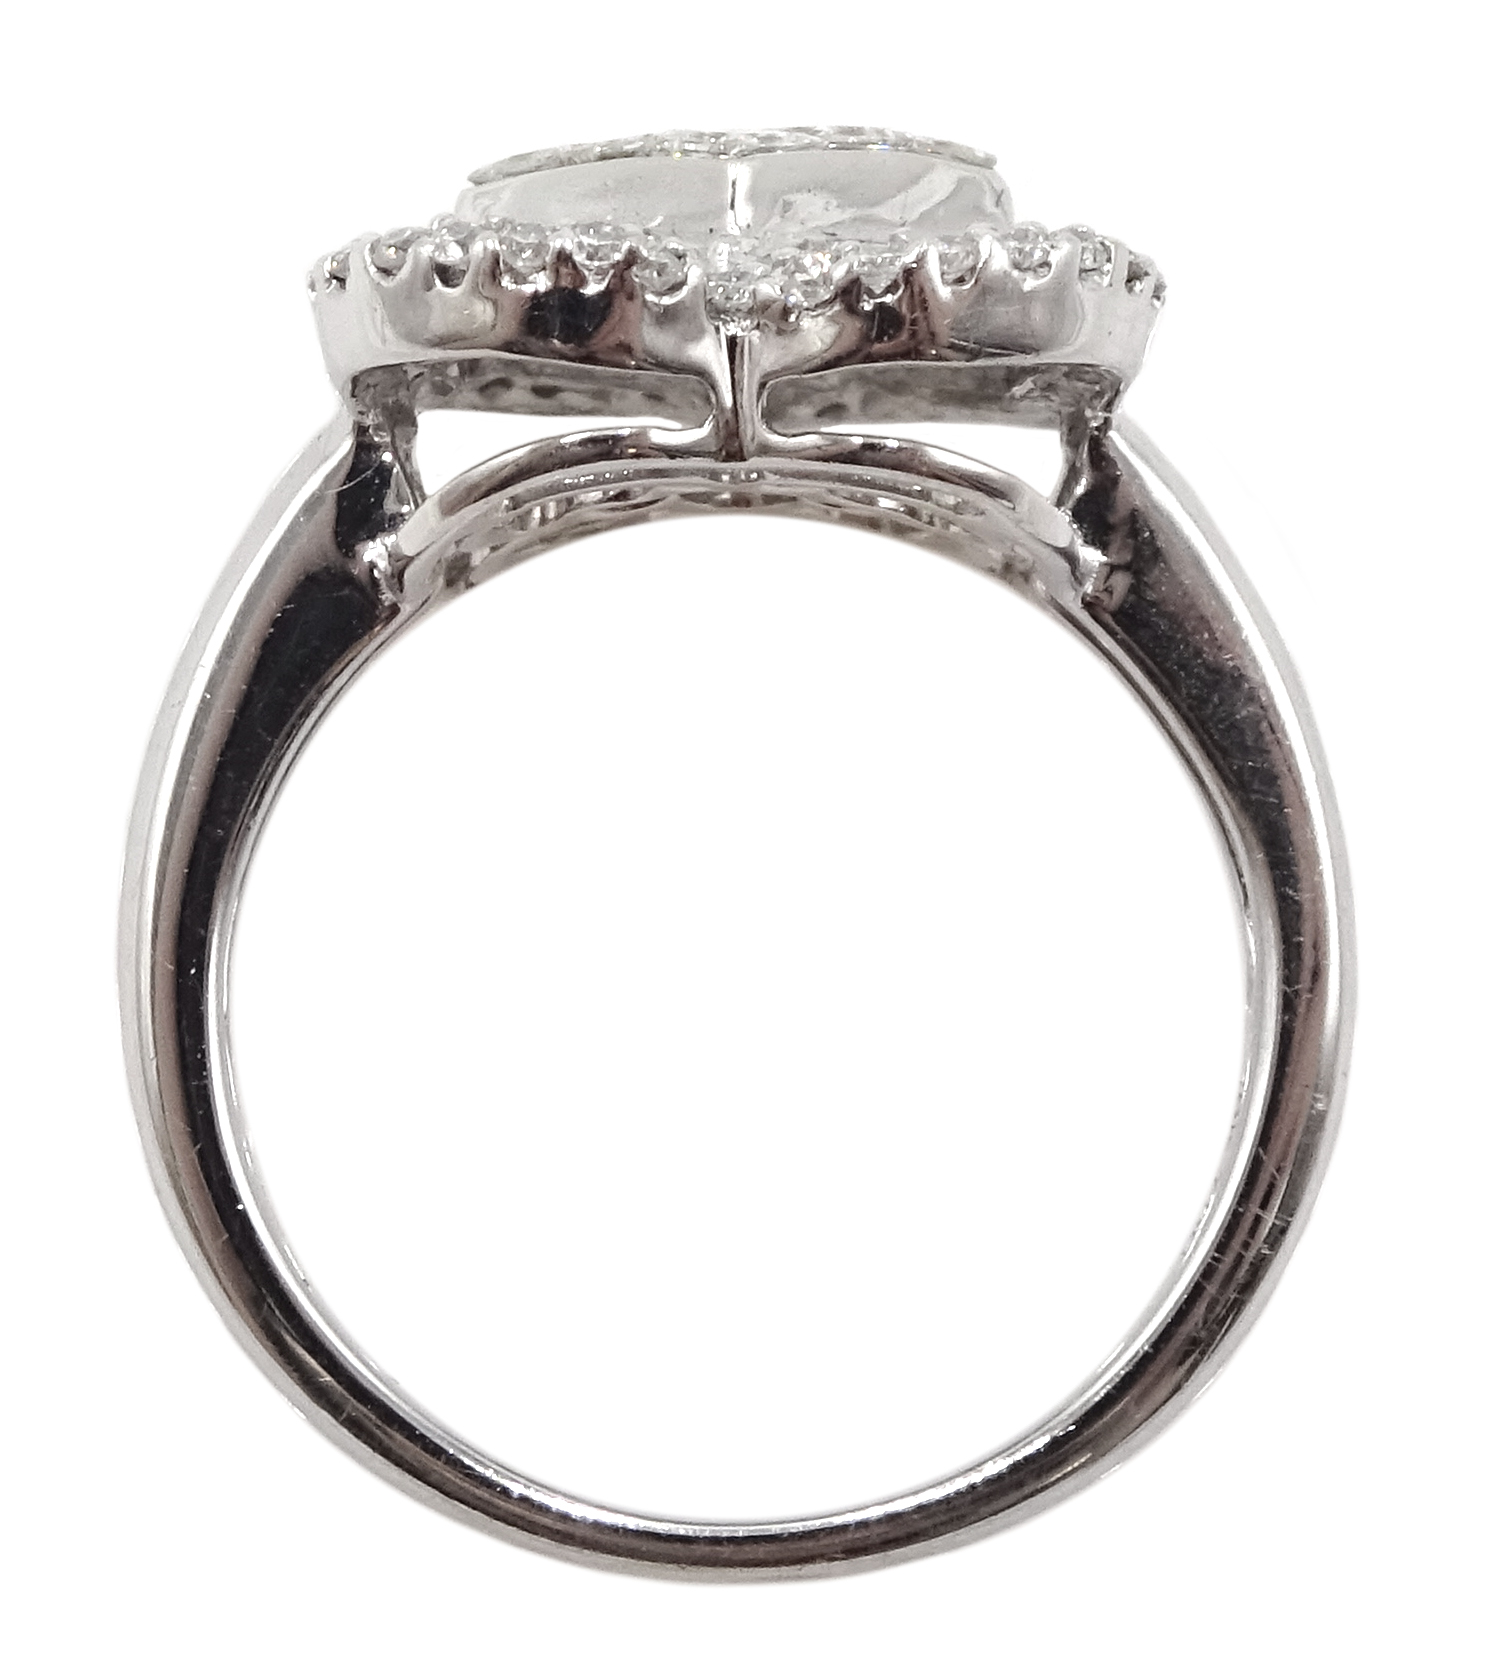 18ct white gold and diamond cluster ring, diamond total weight approx 1.25 carat, free UK mainland - Image 5 of 6